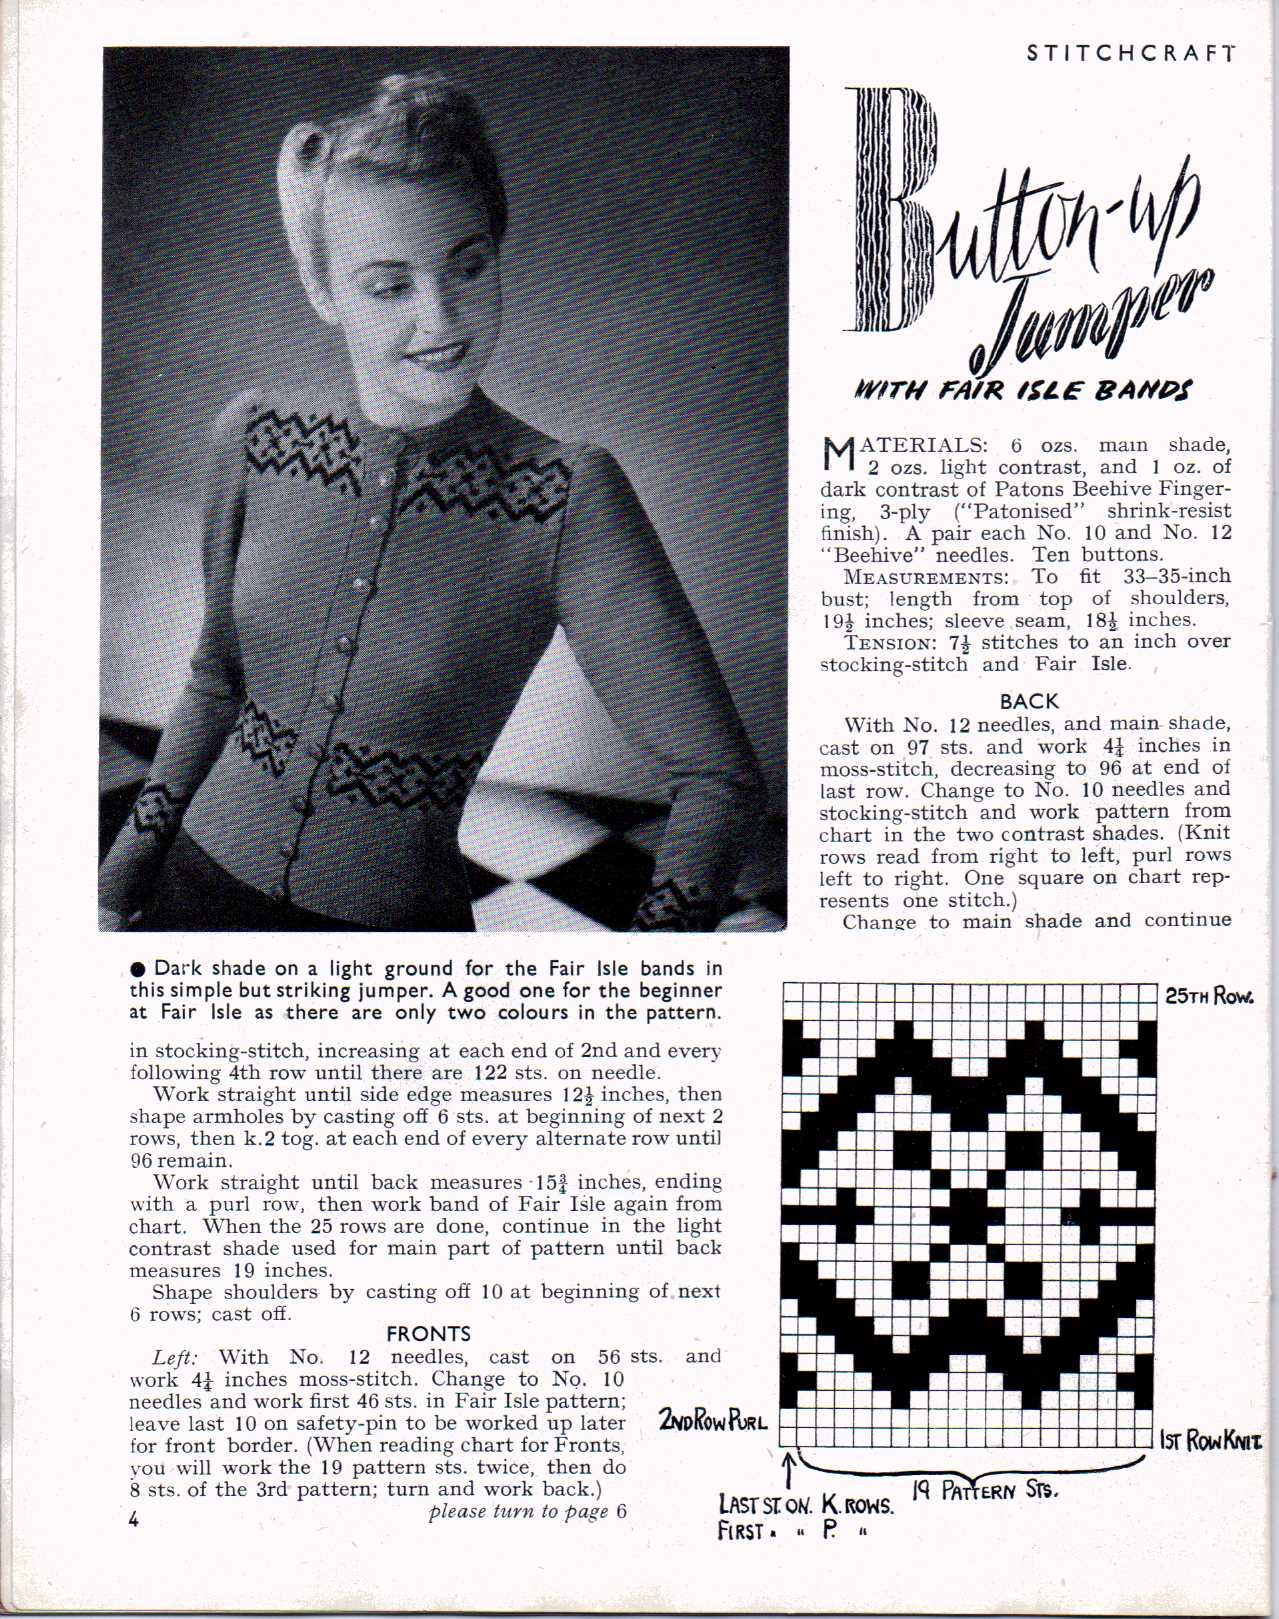 Yours Magazine Knitting Patterns : Free Vintage Knitting Magazine   Stitchcraft February 1947   The Sunny Stitcher